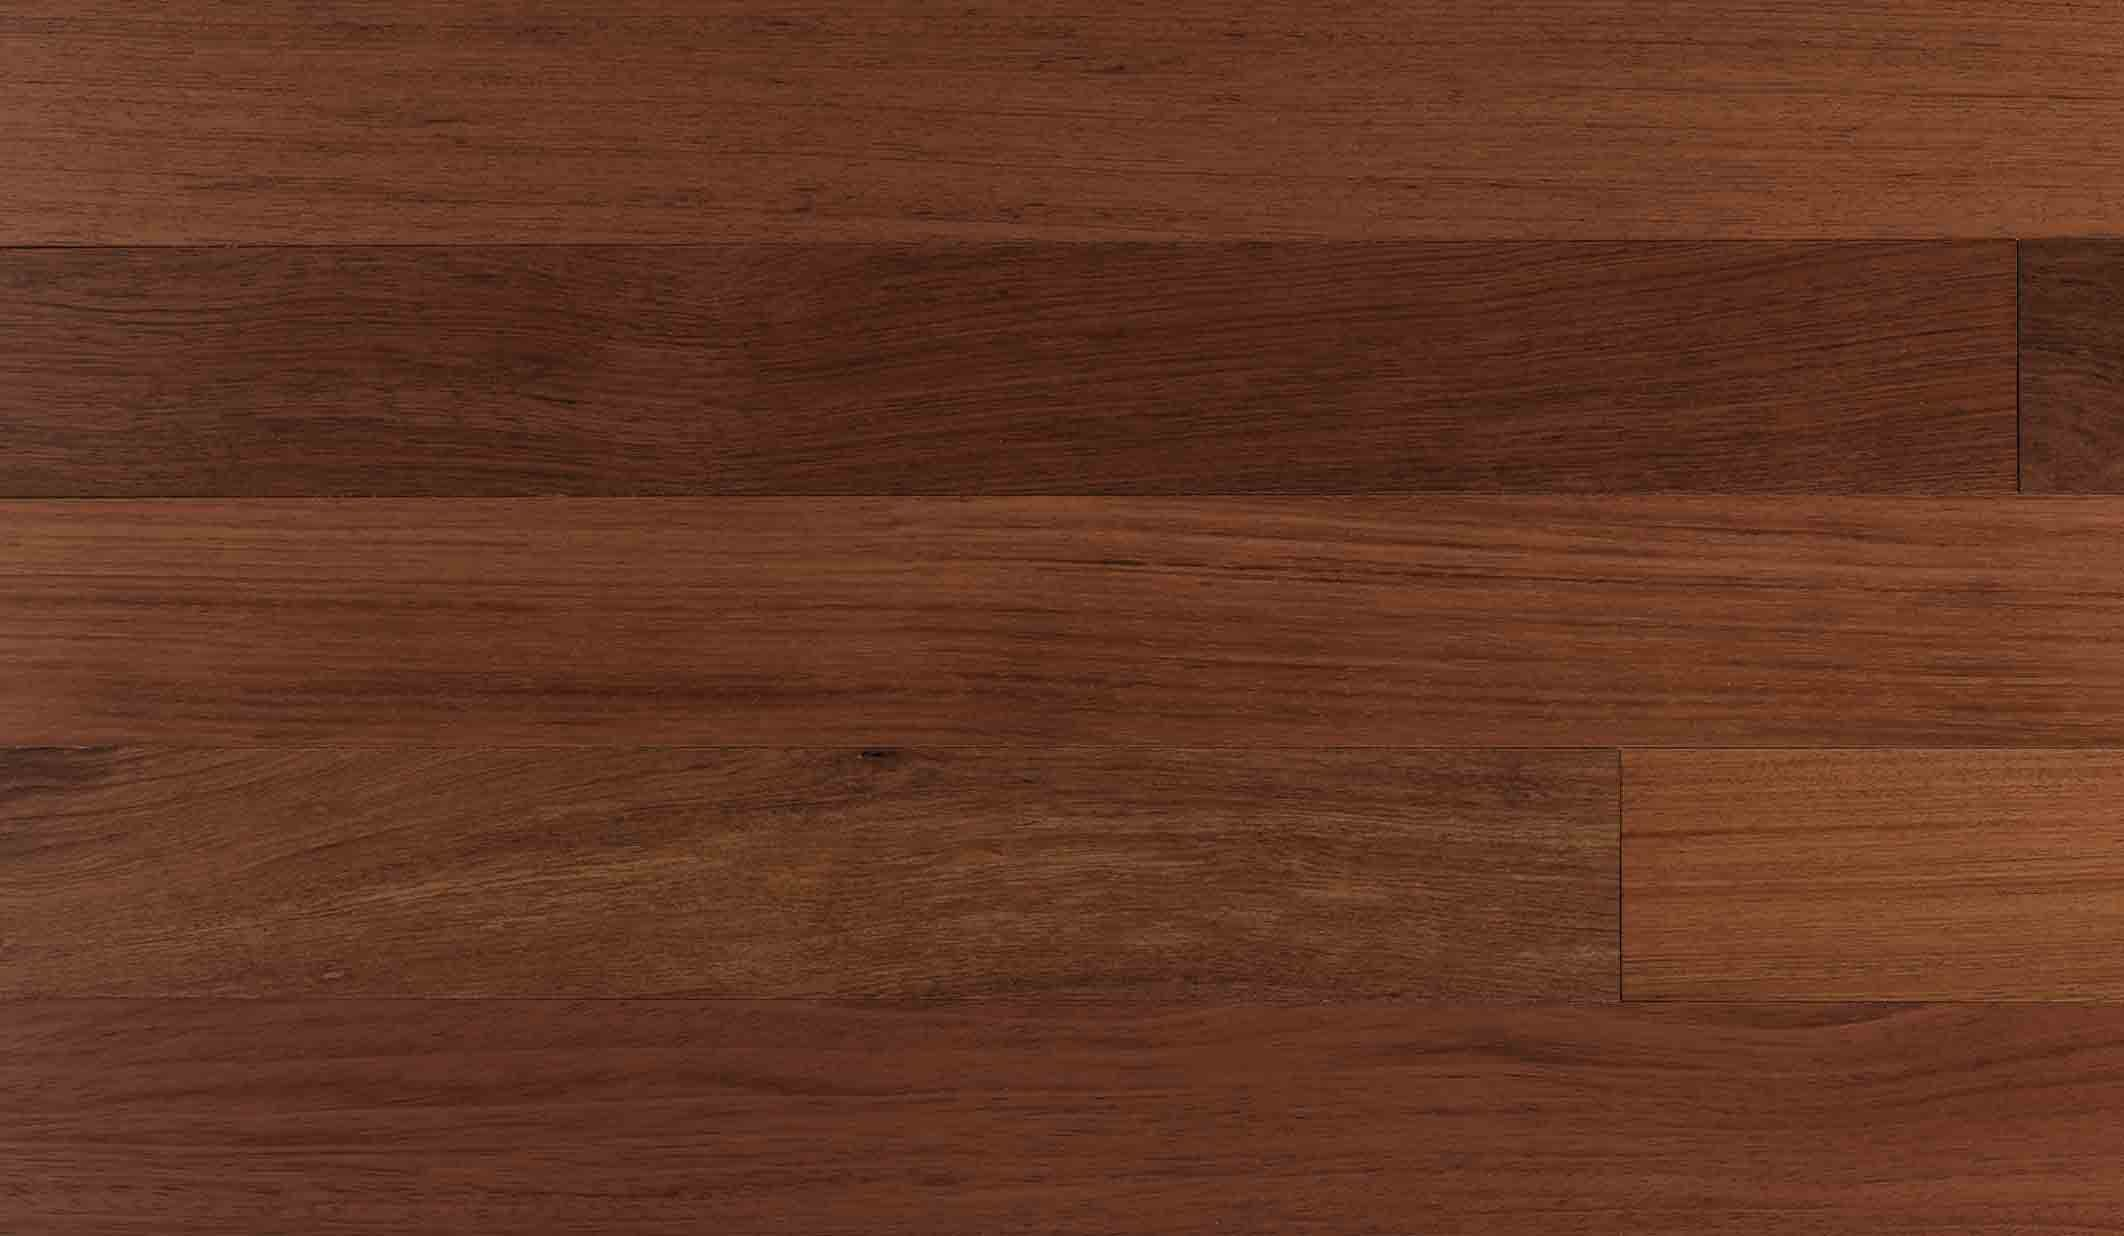 Wood floor texture tileable bleached oak recherche for Floor definition